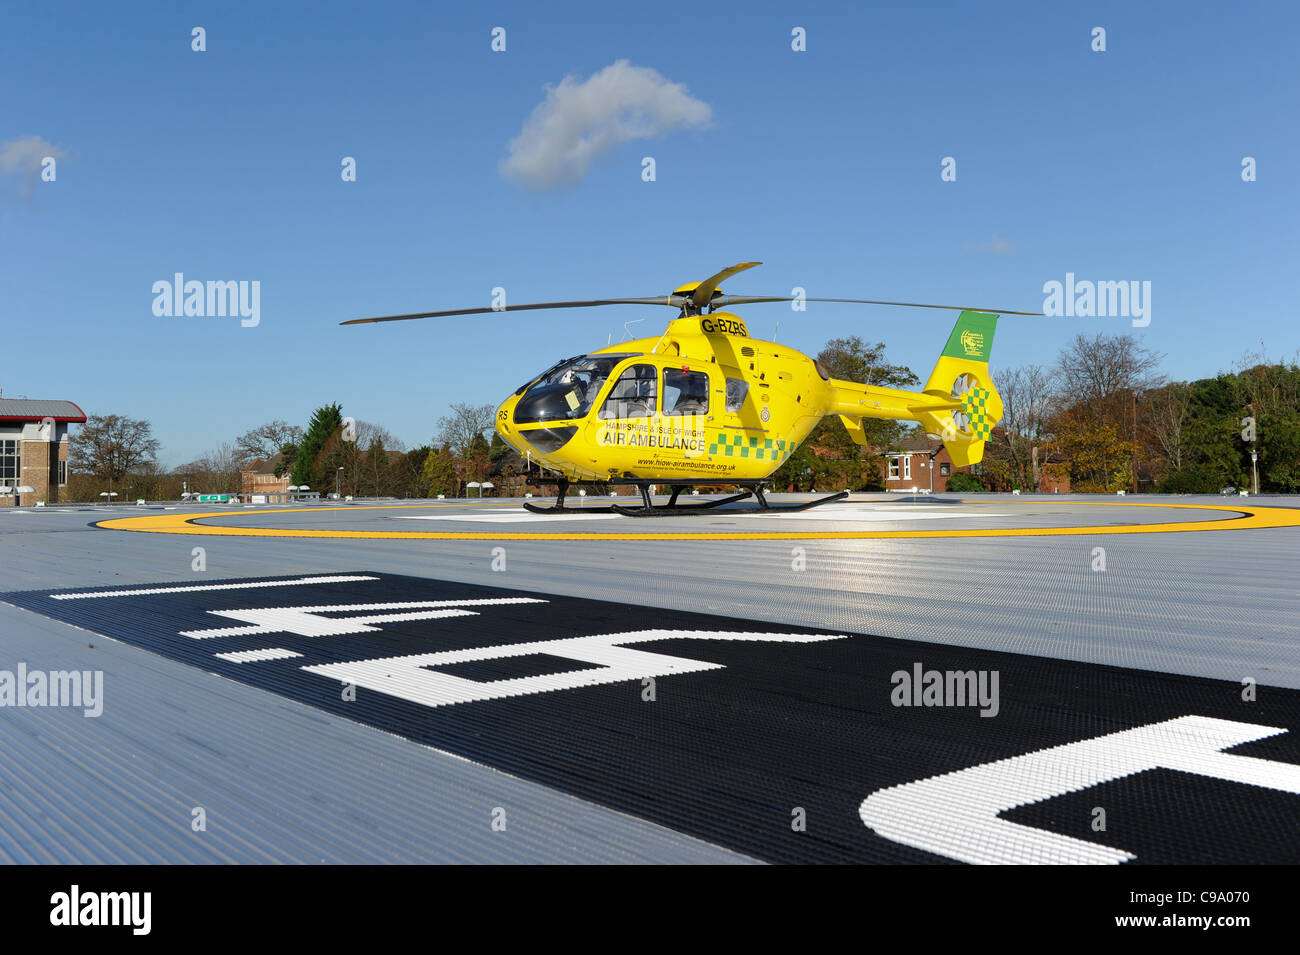 Southampton General hospital helicopter pad with a yellow air ambulance sitting on it - Stock Image